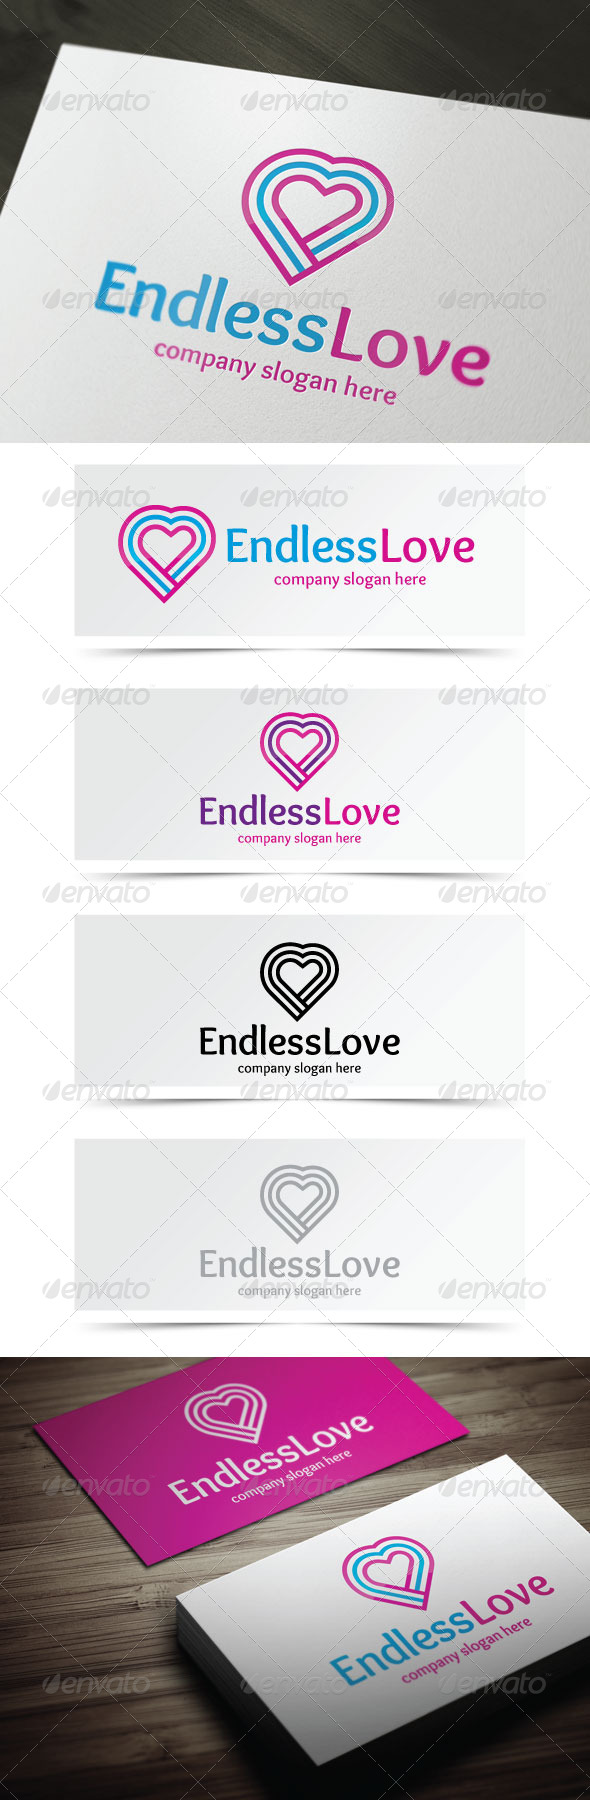 GraphicRiver Endless Love 5255377